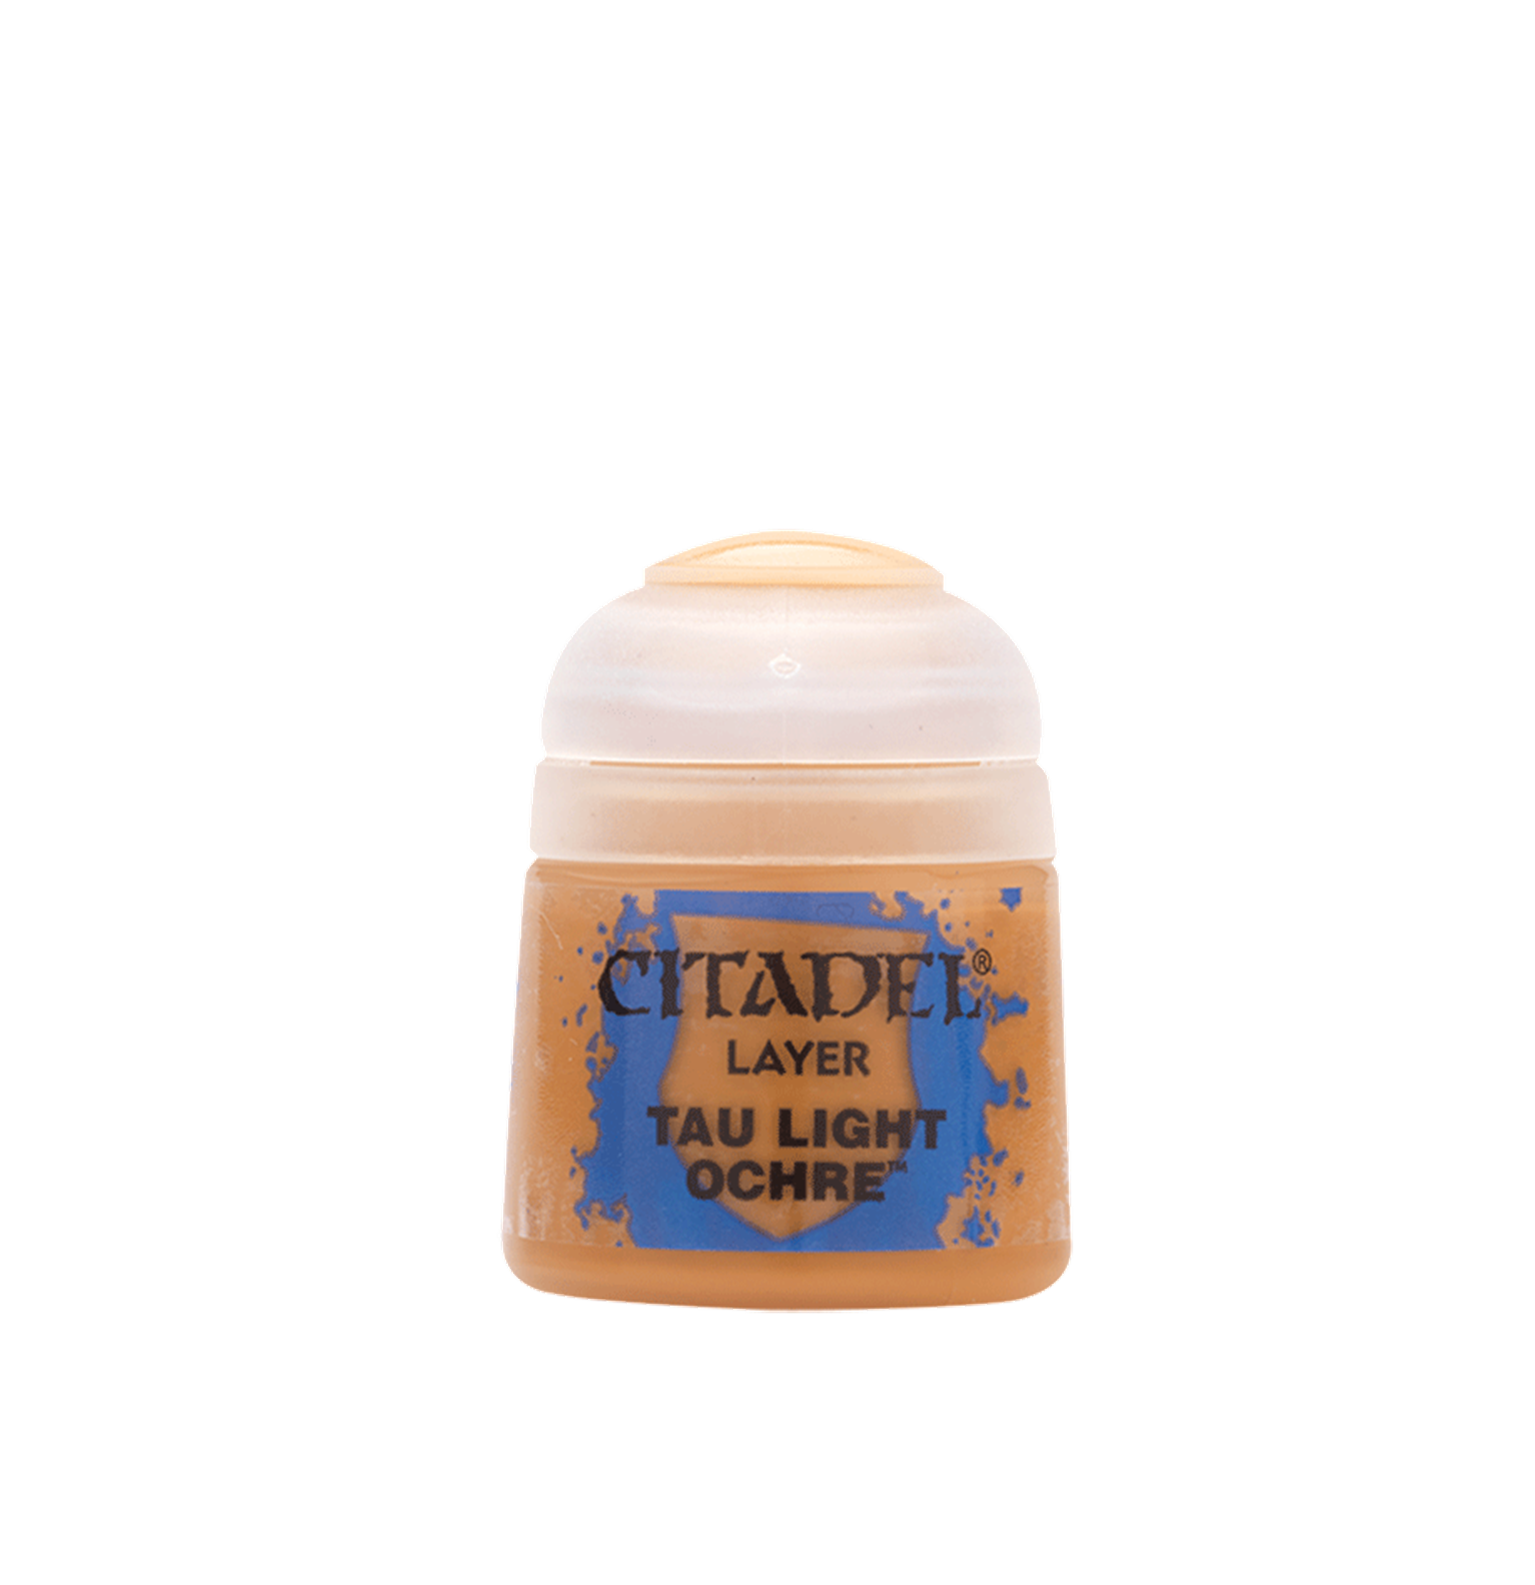 CITADEL LAYER Tau Light Ochre PAINT POT